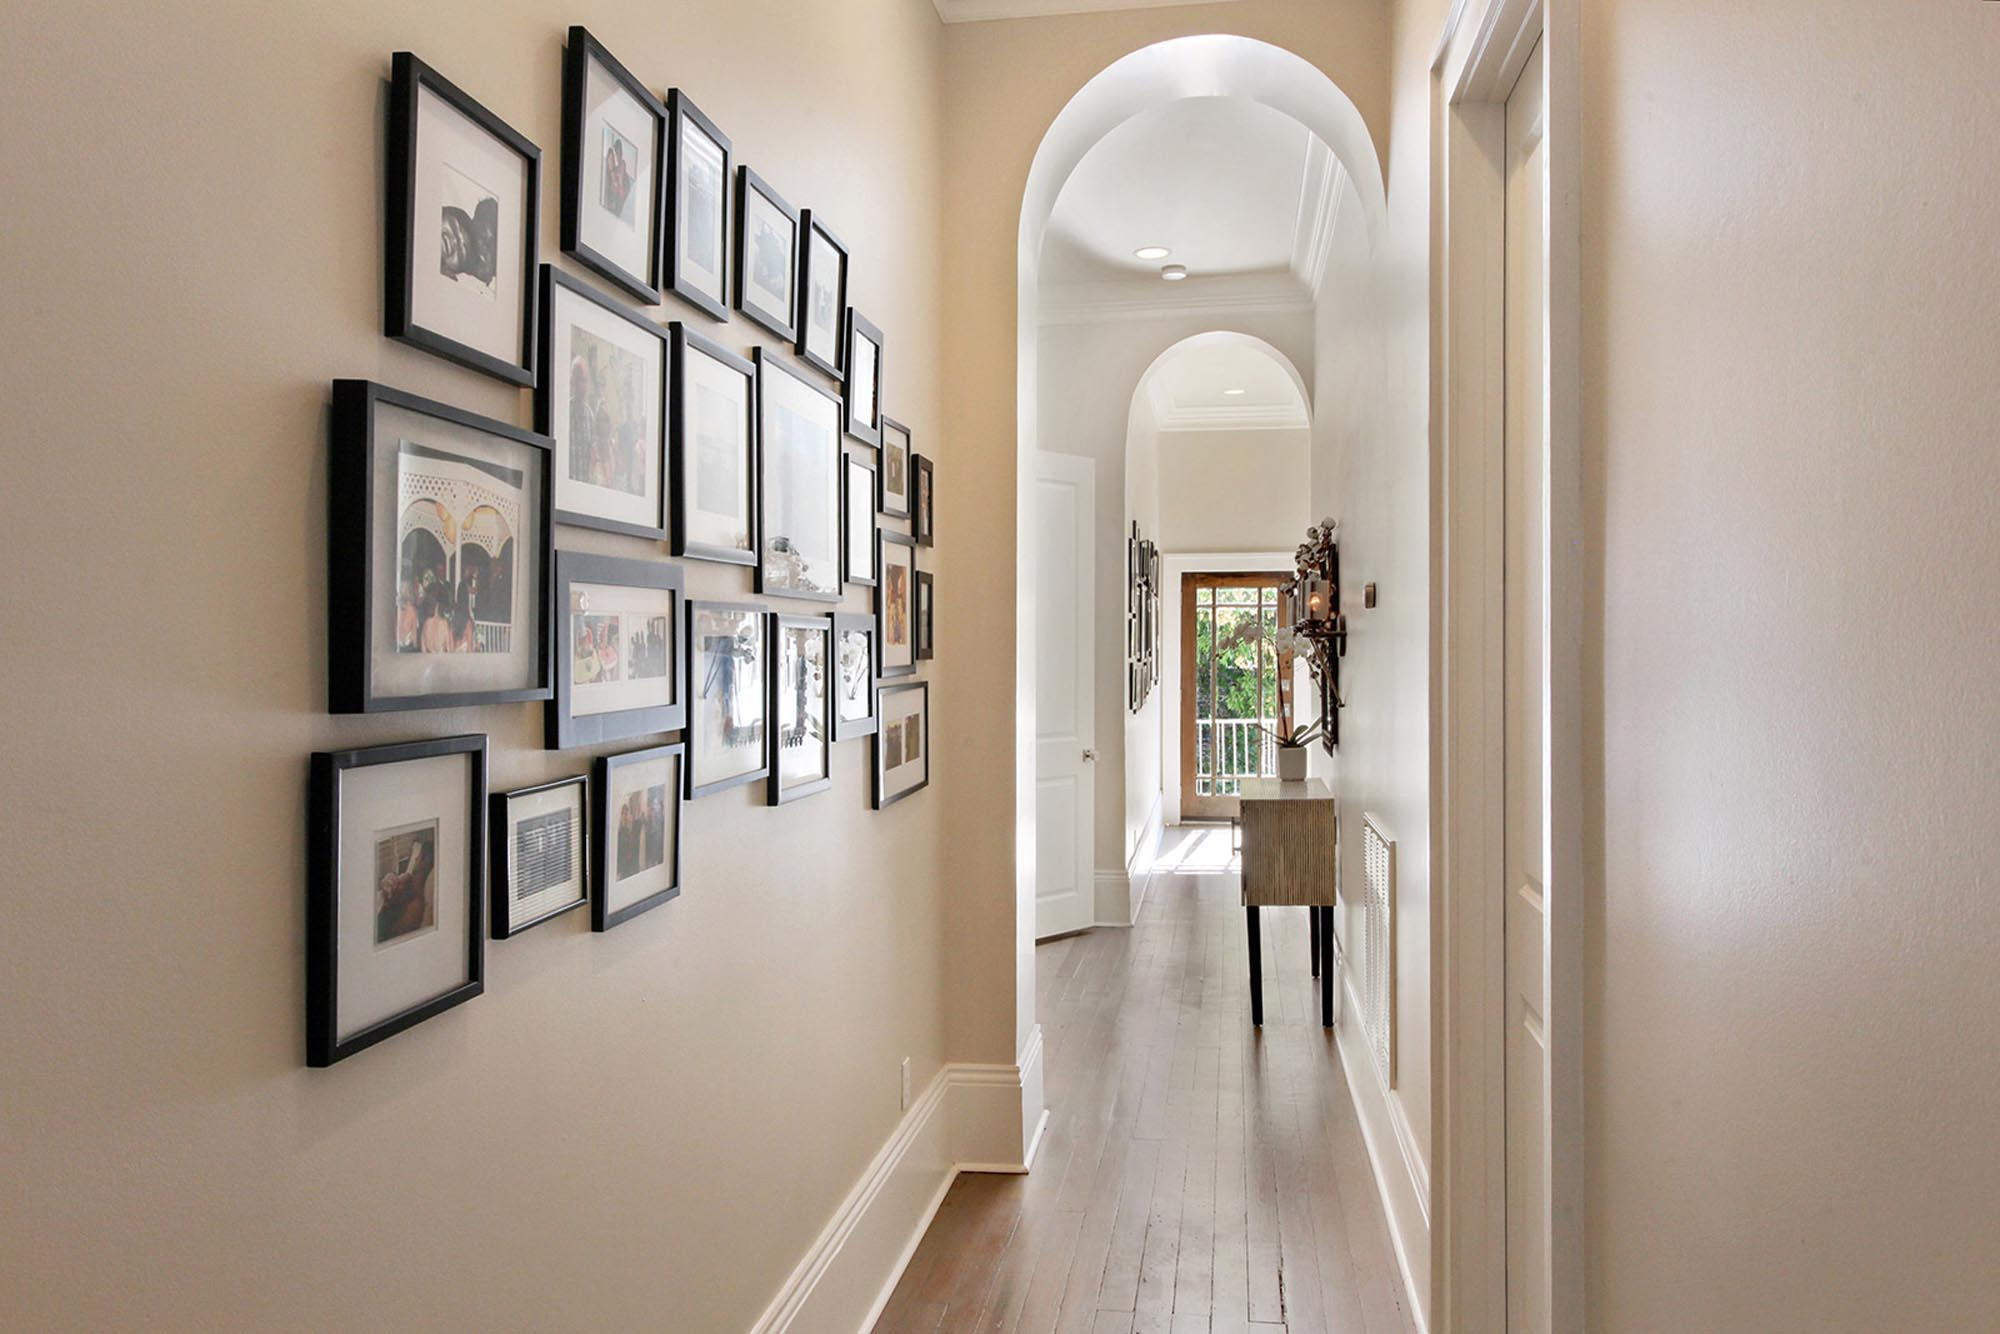 Hallway with frames hanging on wall